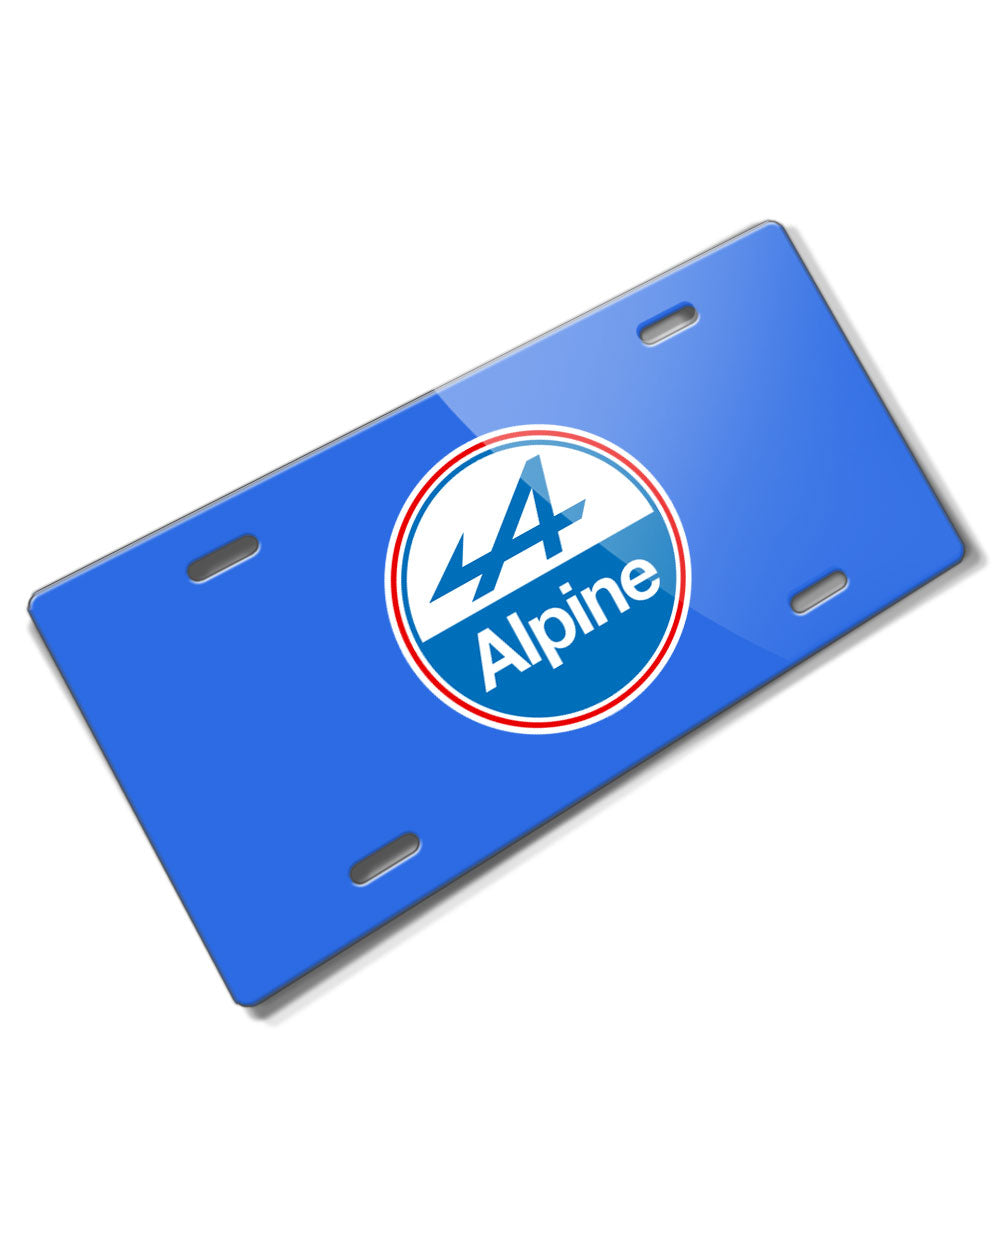 Alpine Renault Badge Emblem Novelty License Plate - Vintage Emblem